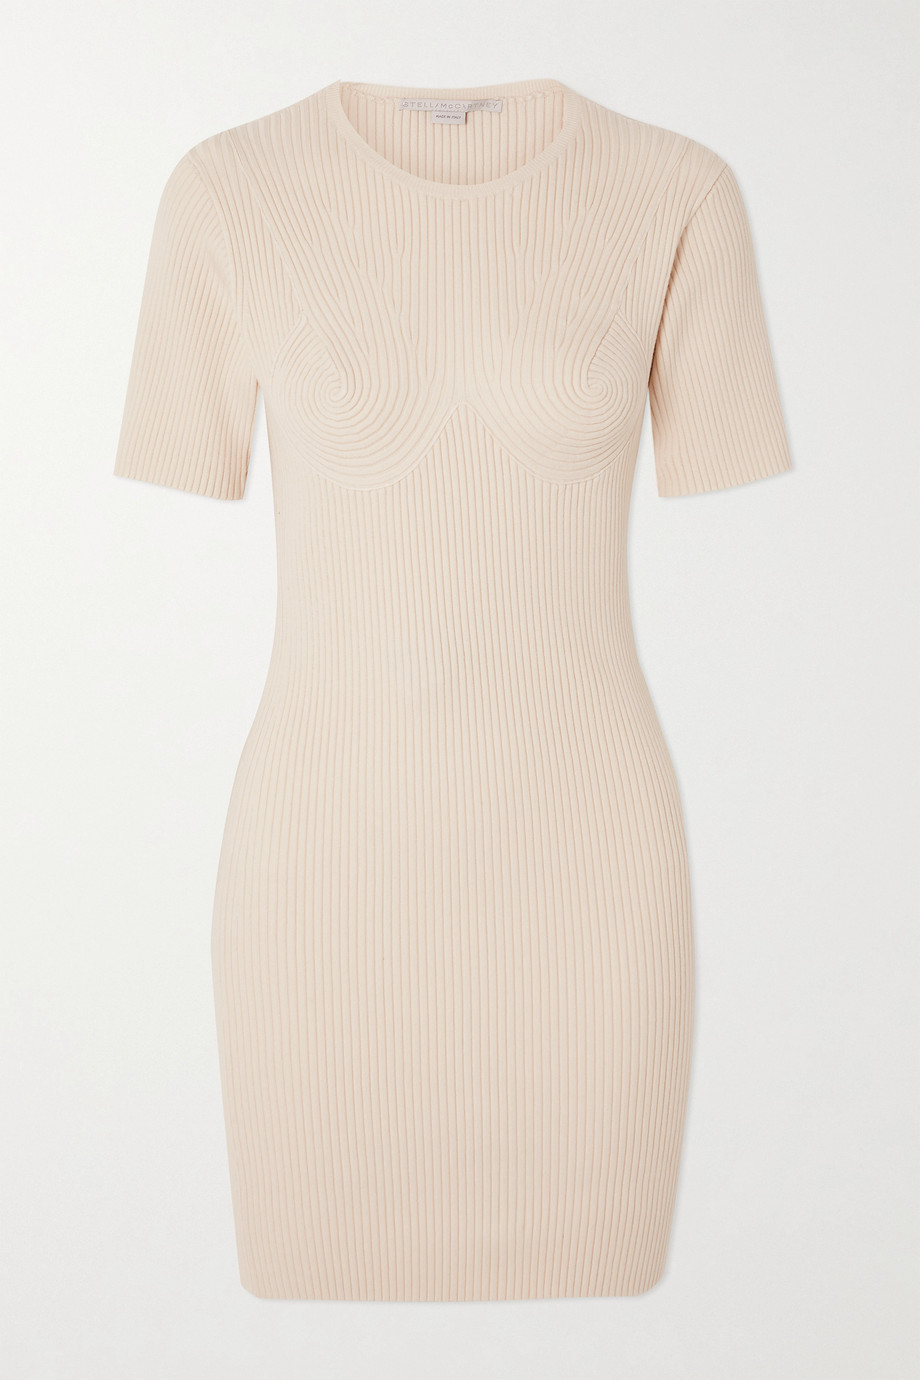 STELLA MCCARTNEY Ribbed cotton-blend mini dress